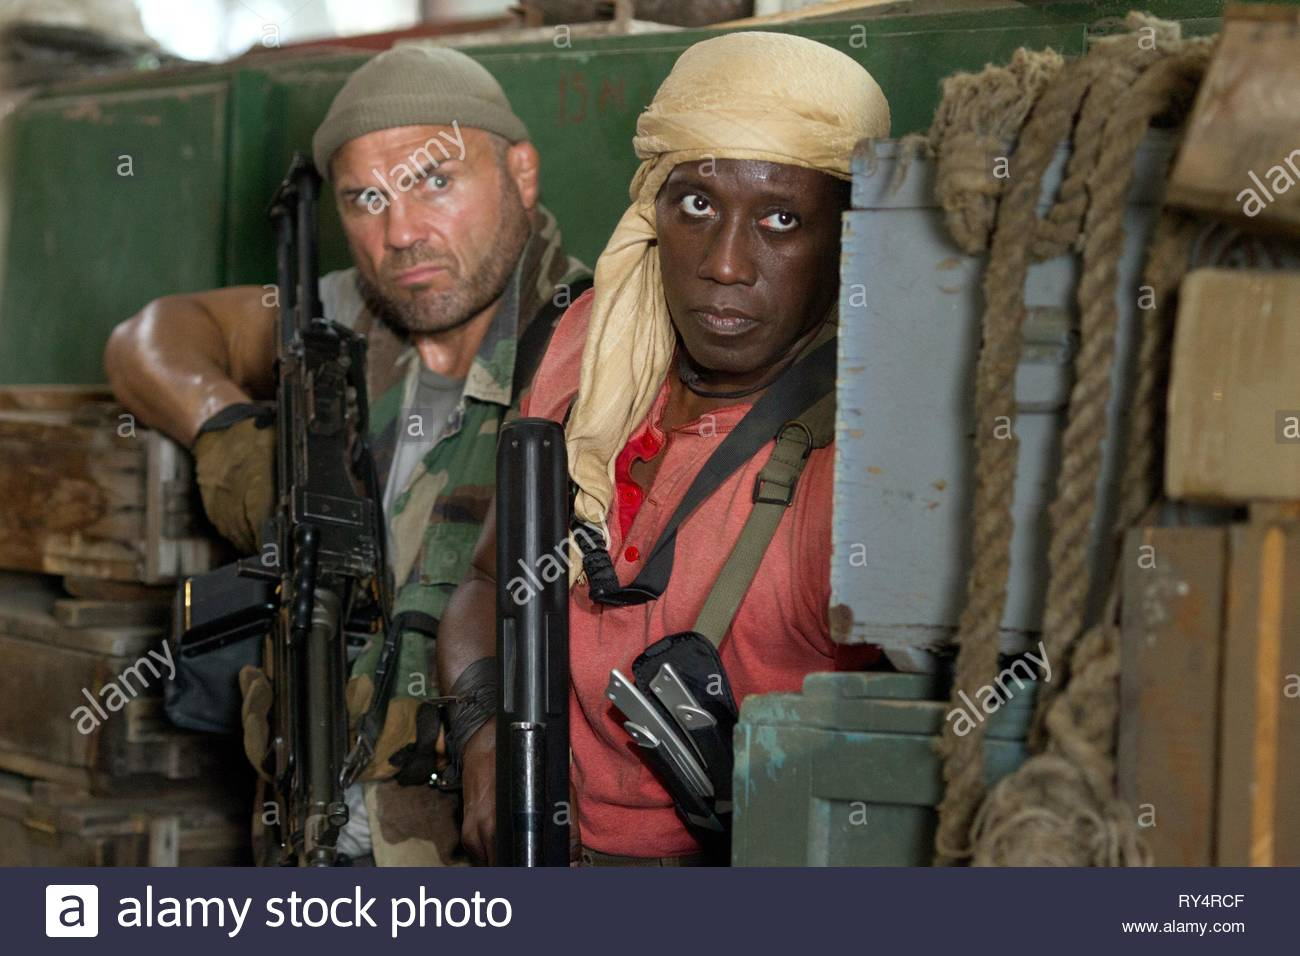 RANDY COUTURE,Wesley Snipes, L'USURE 3, 2014 Photo Stock